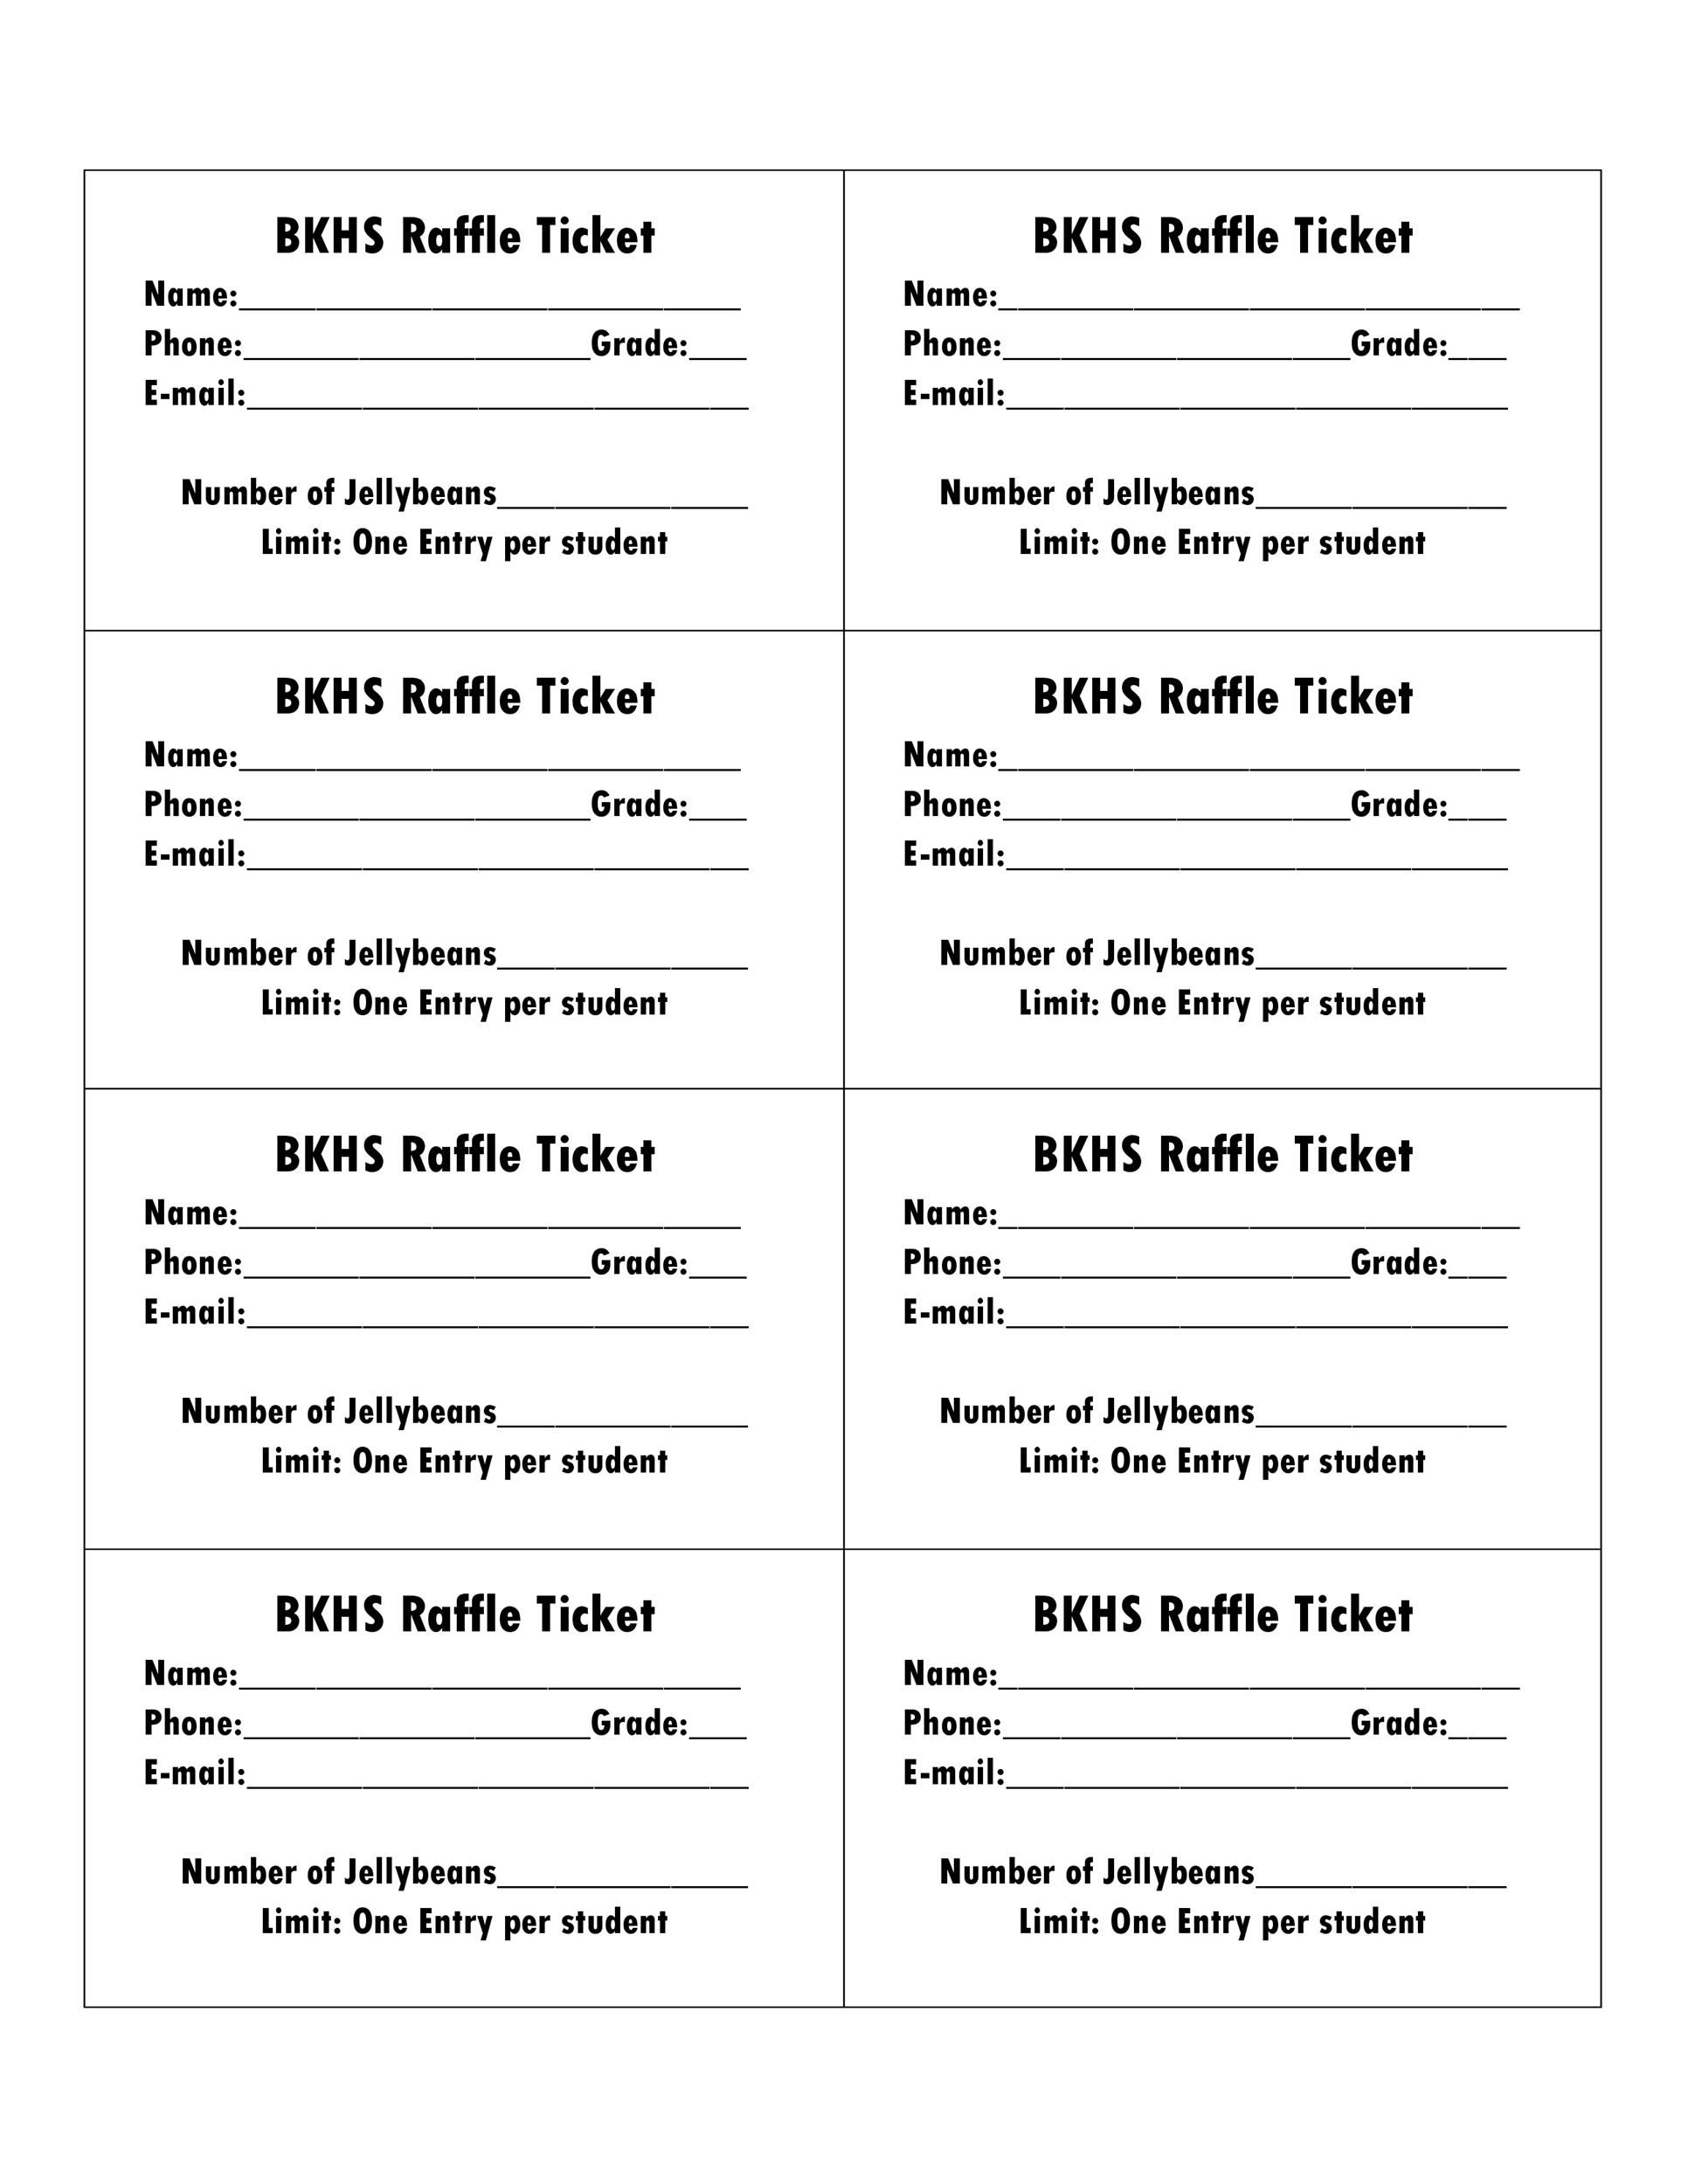 008 Remarkable Free Printable Ticket Template Design  Raffle Printing Airline For Gift ConcertFull